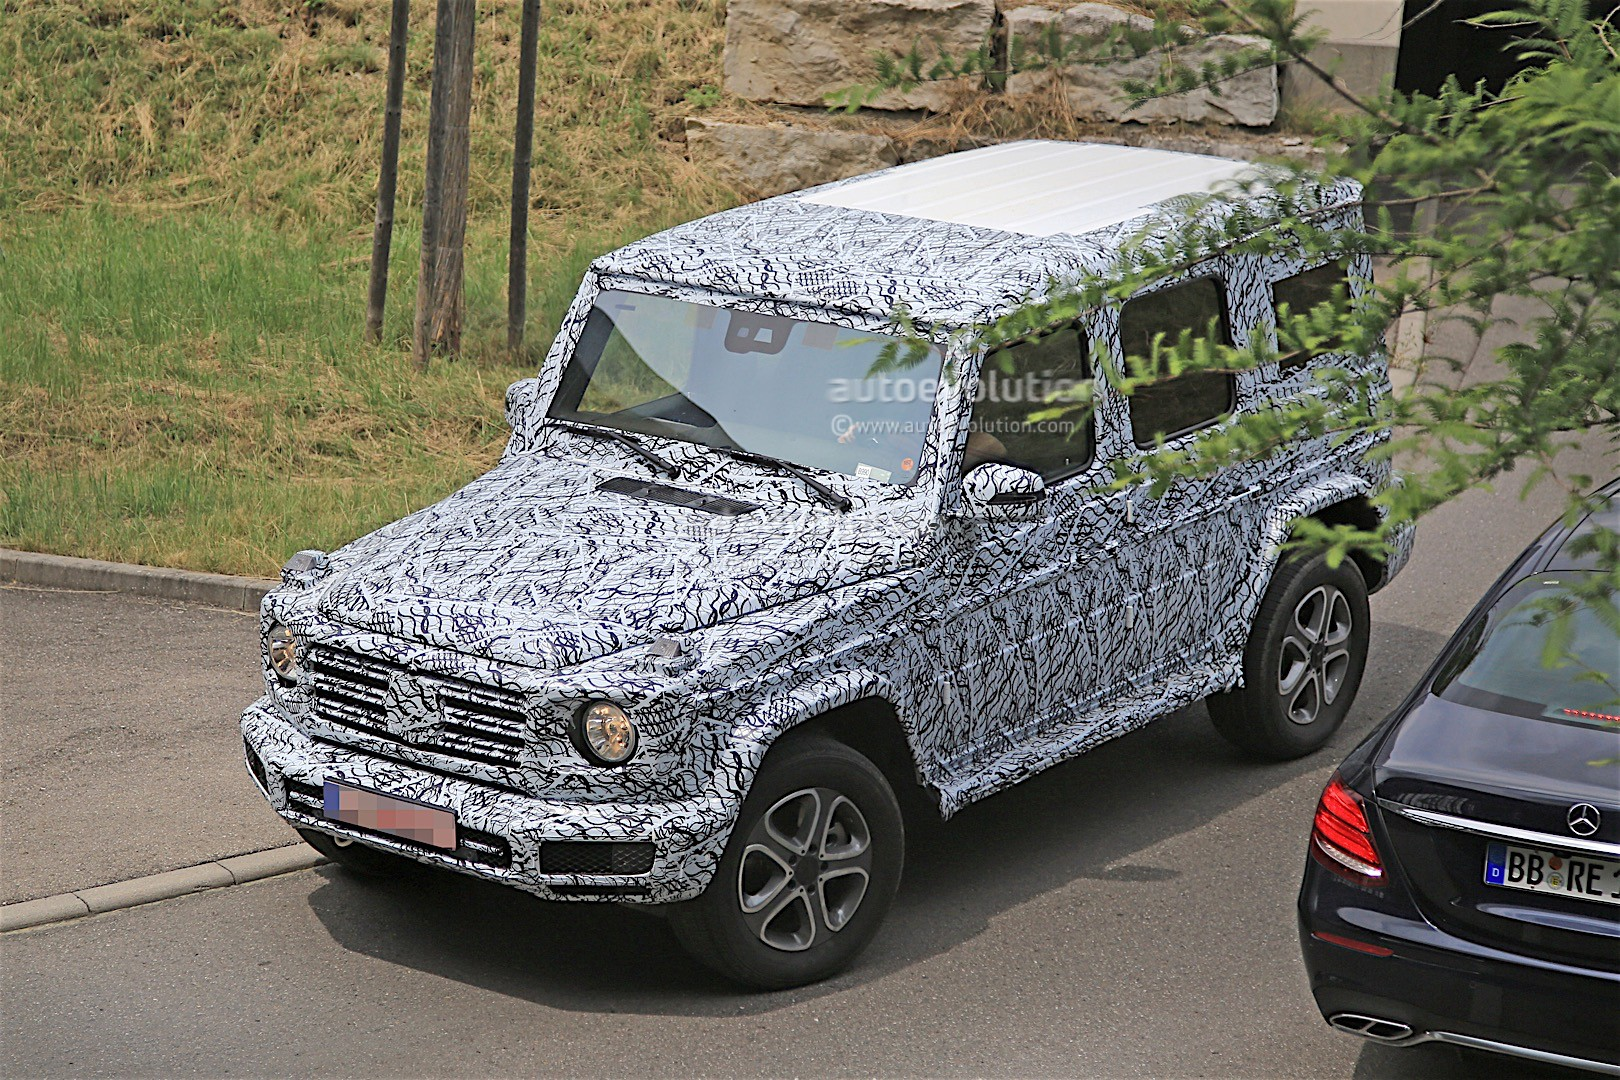 2018 mercedes benz g class spied on the road it 39 s still boxy as ever autoevolution. Black Bedroom Furniture Sets. Home Design Ideas